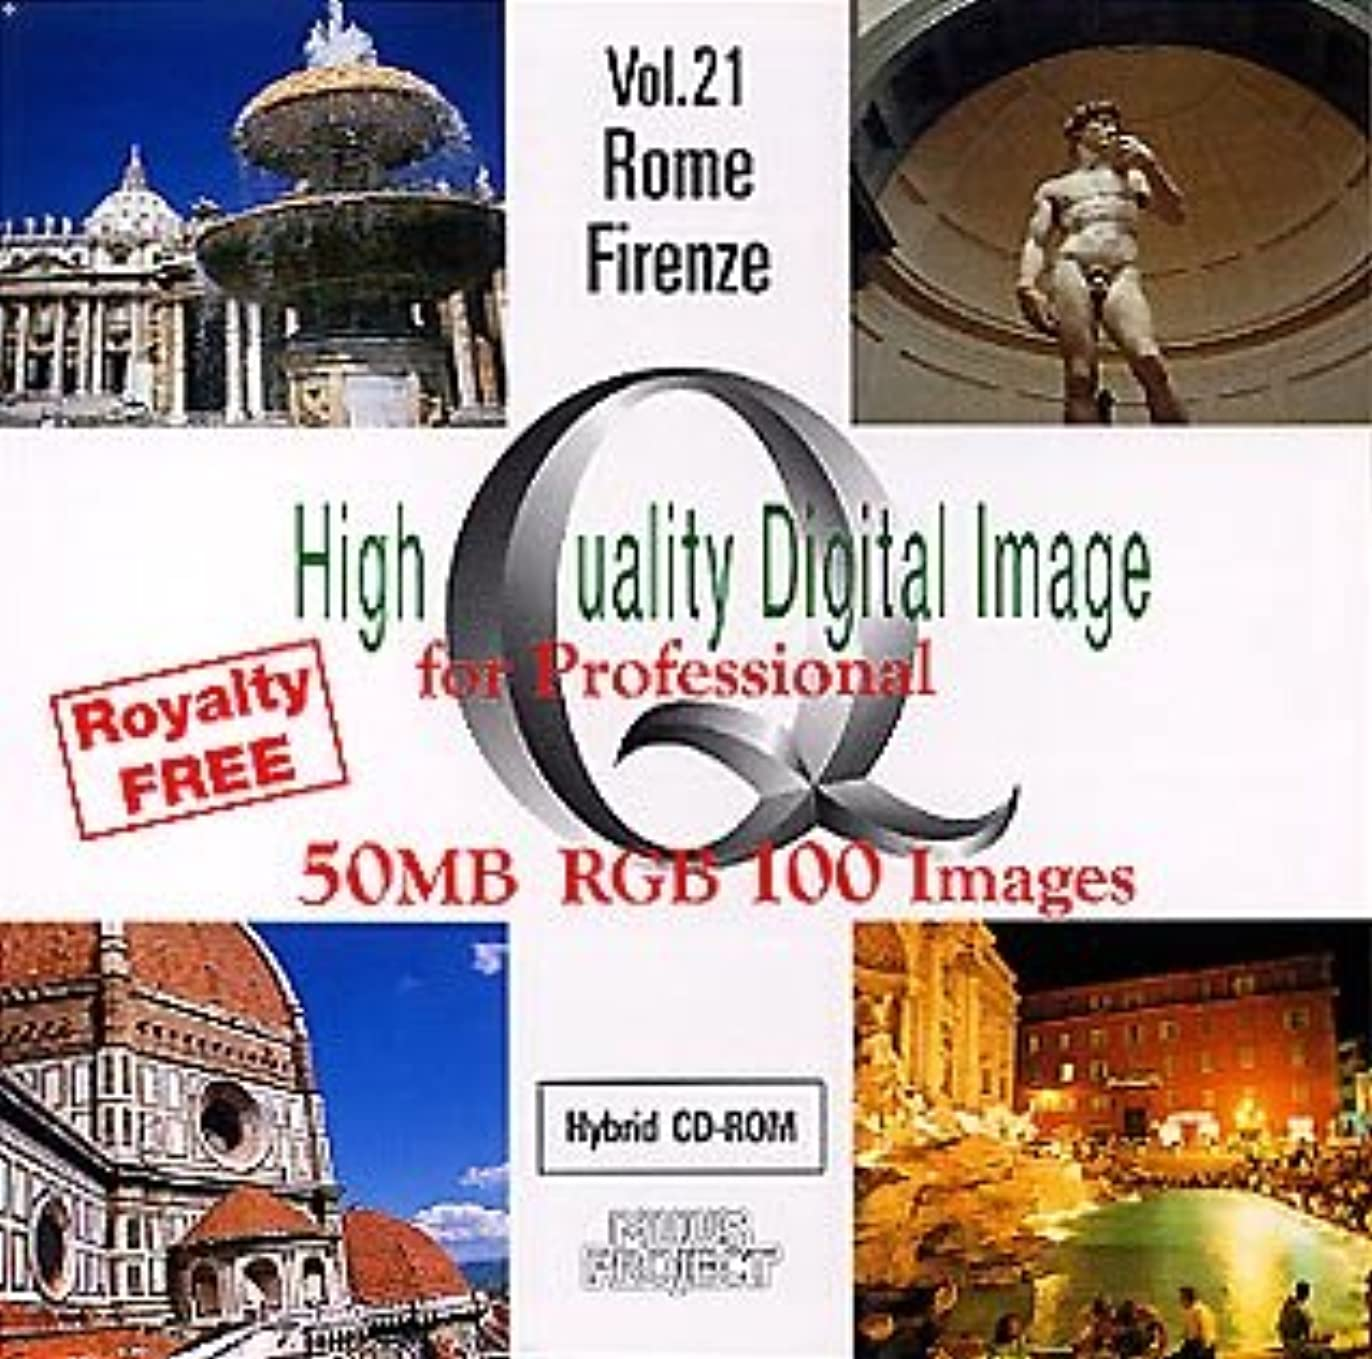 遠え推進力ミンチHigh Quality Digital Image for Professional Vol.21 Rome Firenze